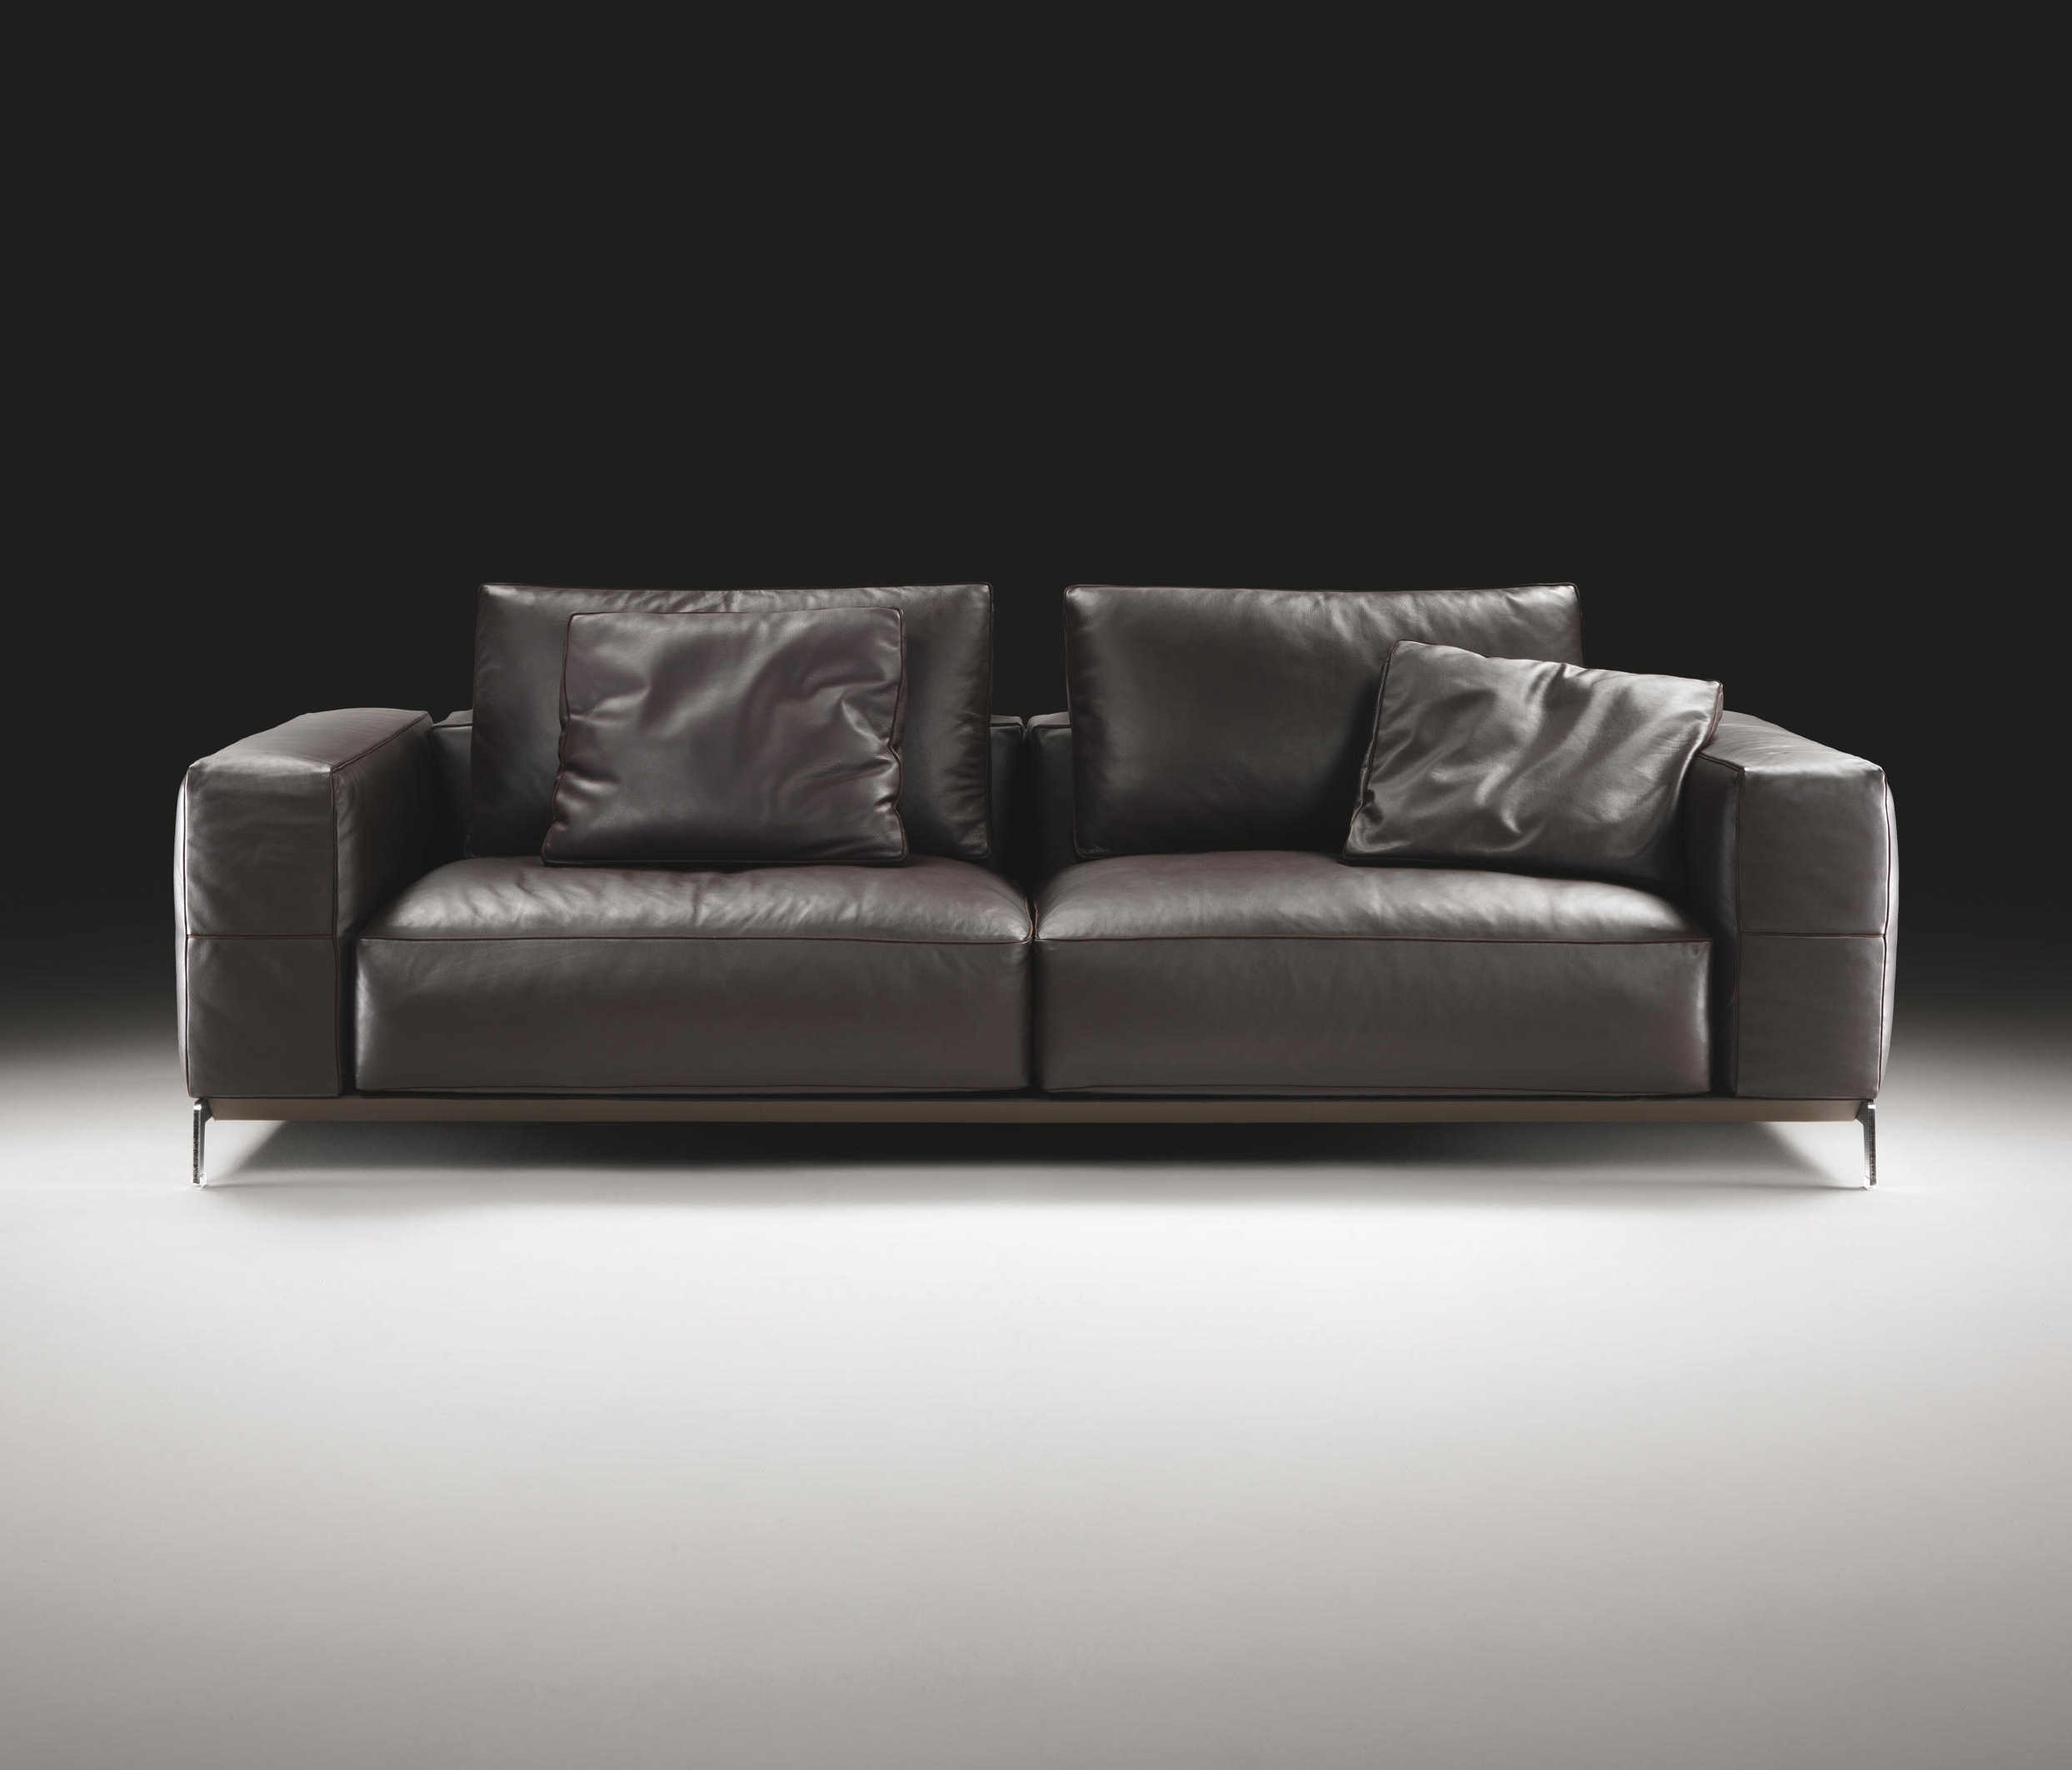 Architonic Within Most Recent Flexform Sofas (View 6 of 20)